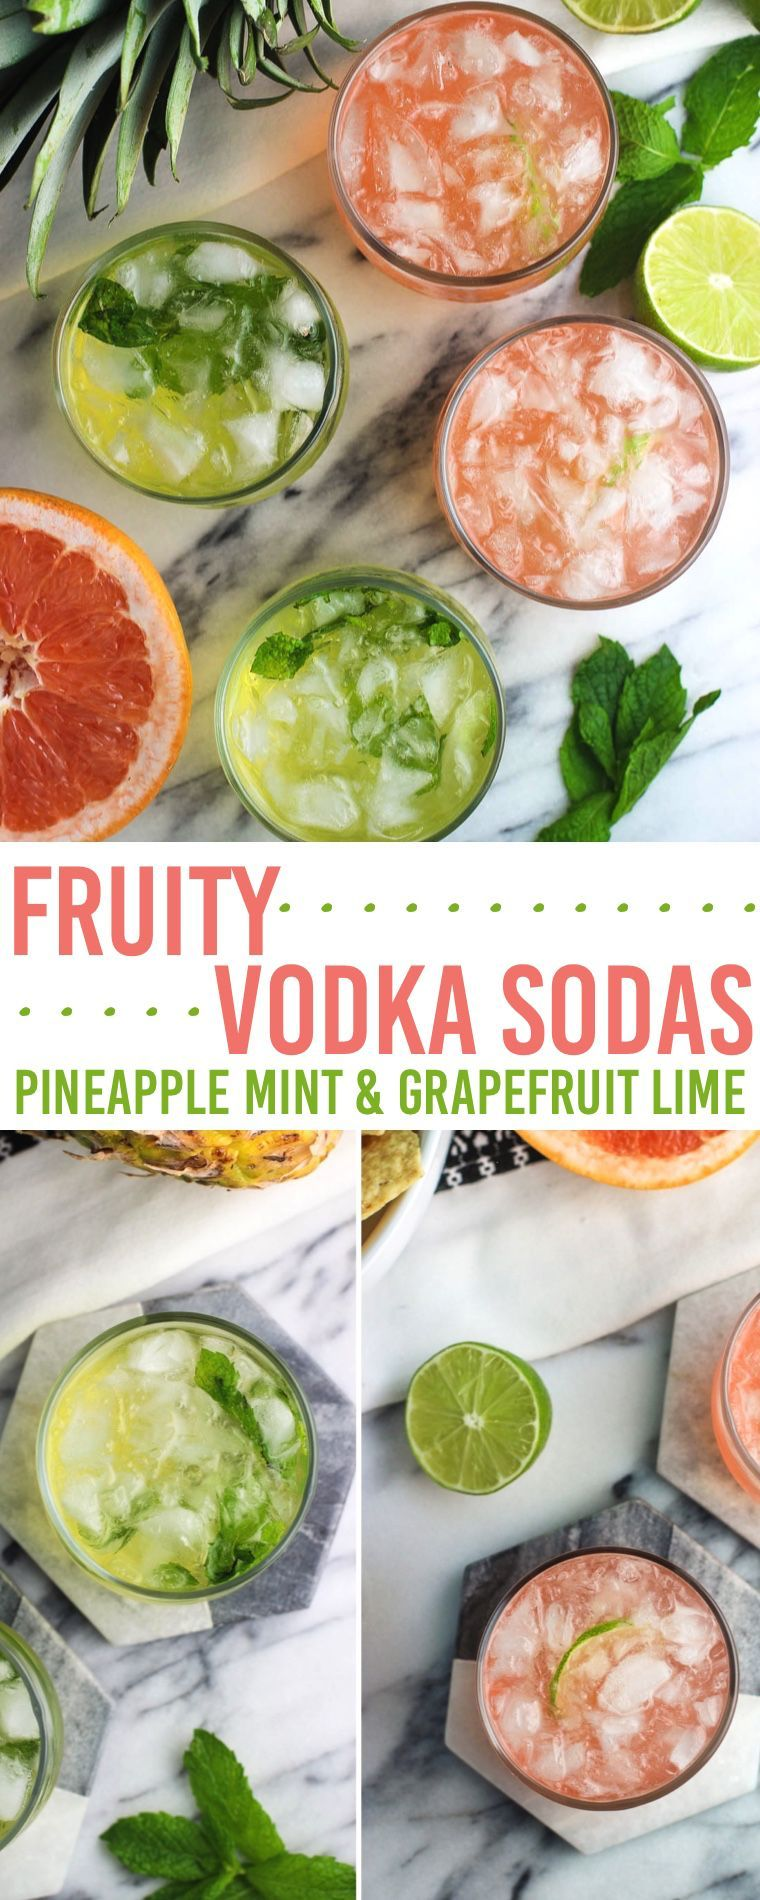 vodka sodas are an easy summer cocktail recipe perfect for backyard BBQs, lounging poolside, and more. Minimal ingredients are needed to make either pineapple mint or grapefruit lime versions - both are flavorful and refreshing!